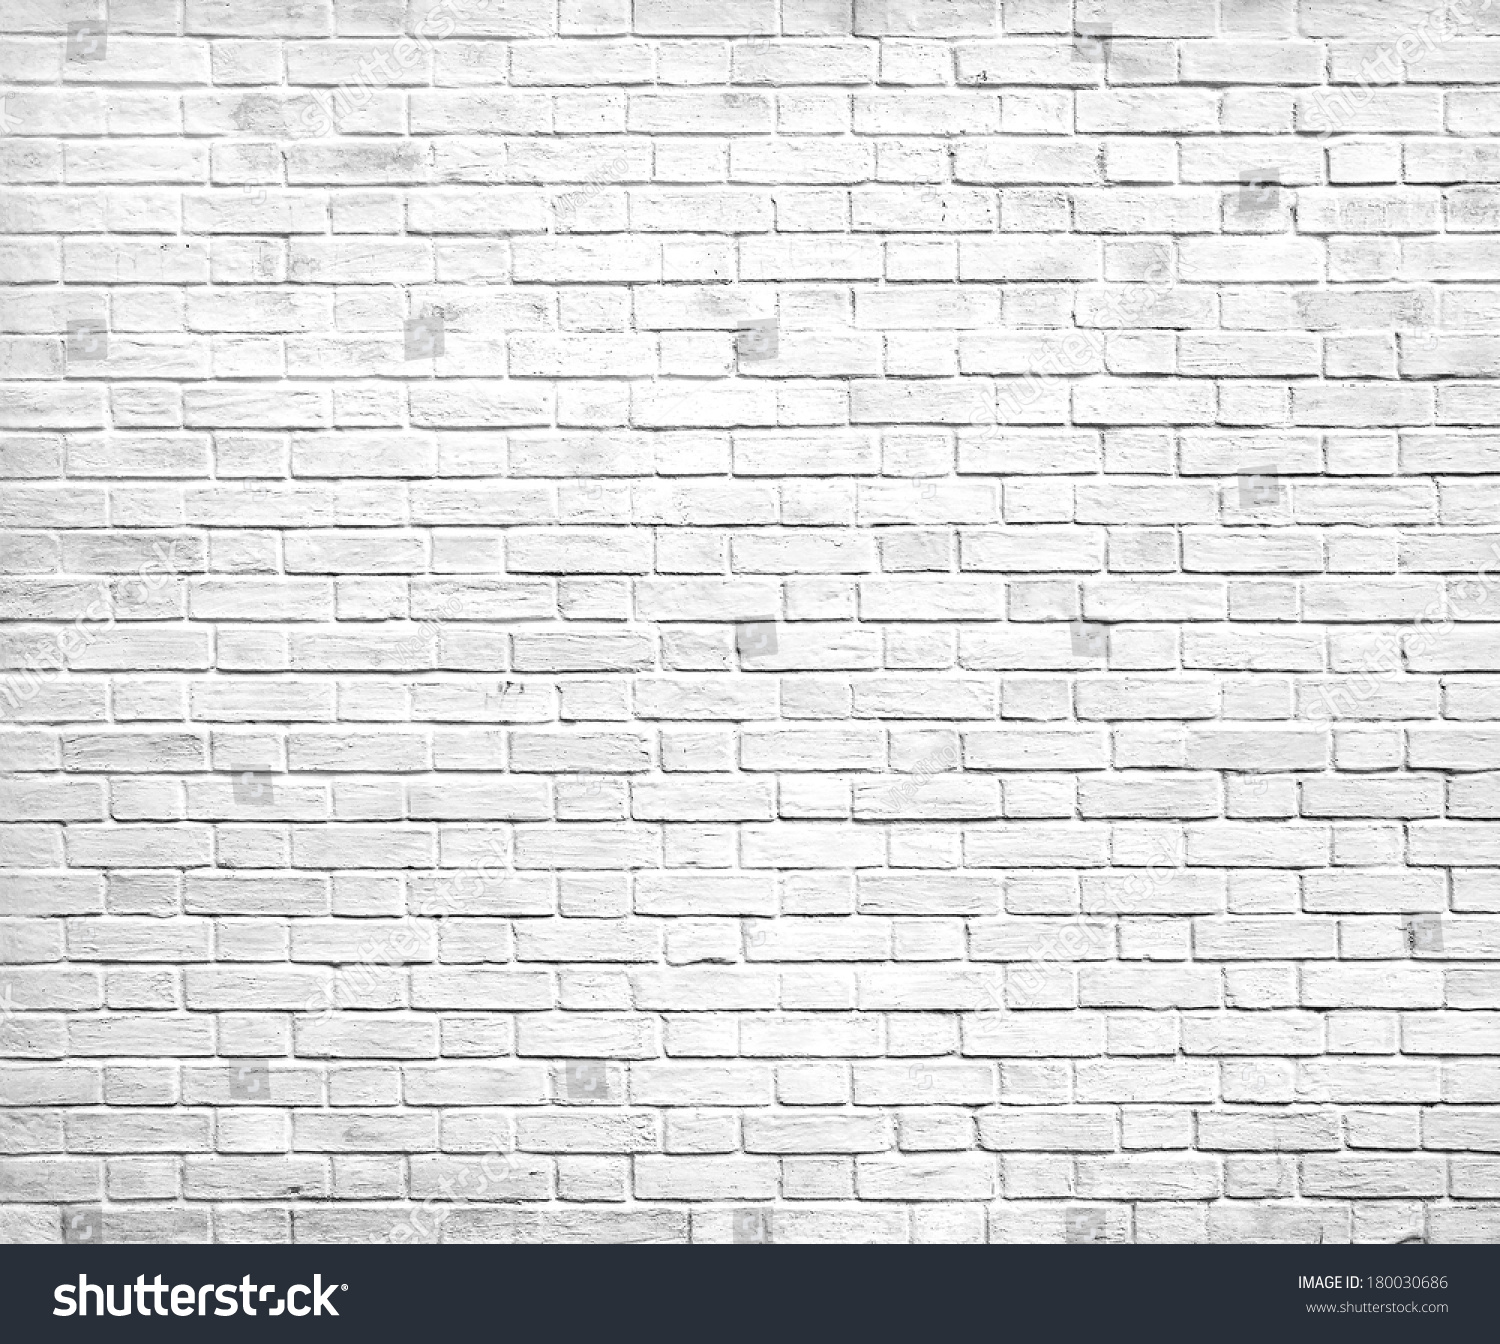 Abstract Weathered Texture Of Stained Old Stucco Light Gray And Paint White B